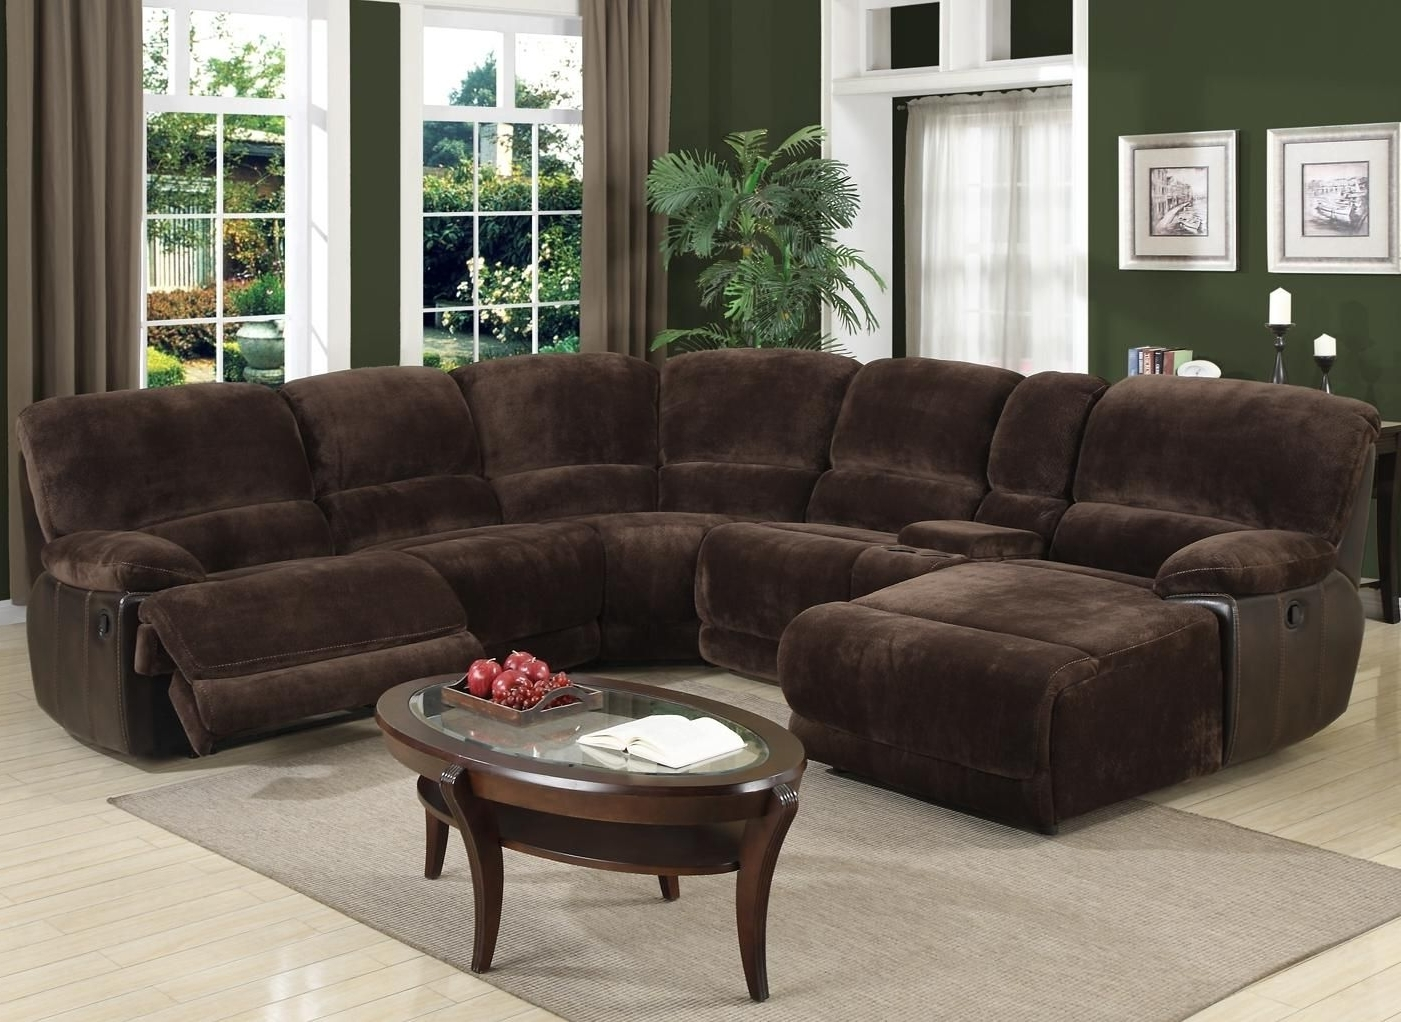 Trendy Motion Masters 3460 Casual Raf Chaise Reclining Sectional – Reeds Within Sams Club Sectional Sofas (View 13 of 20)